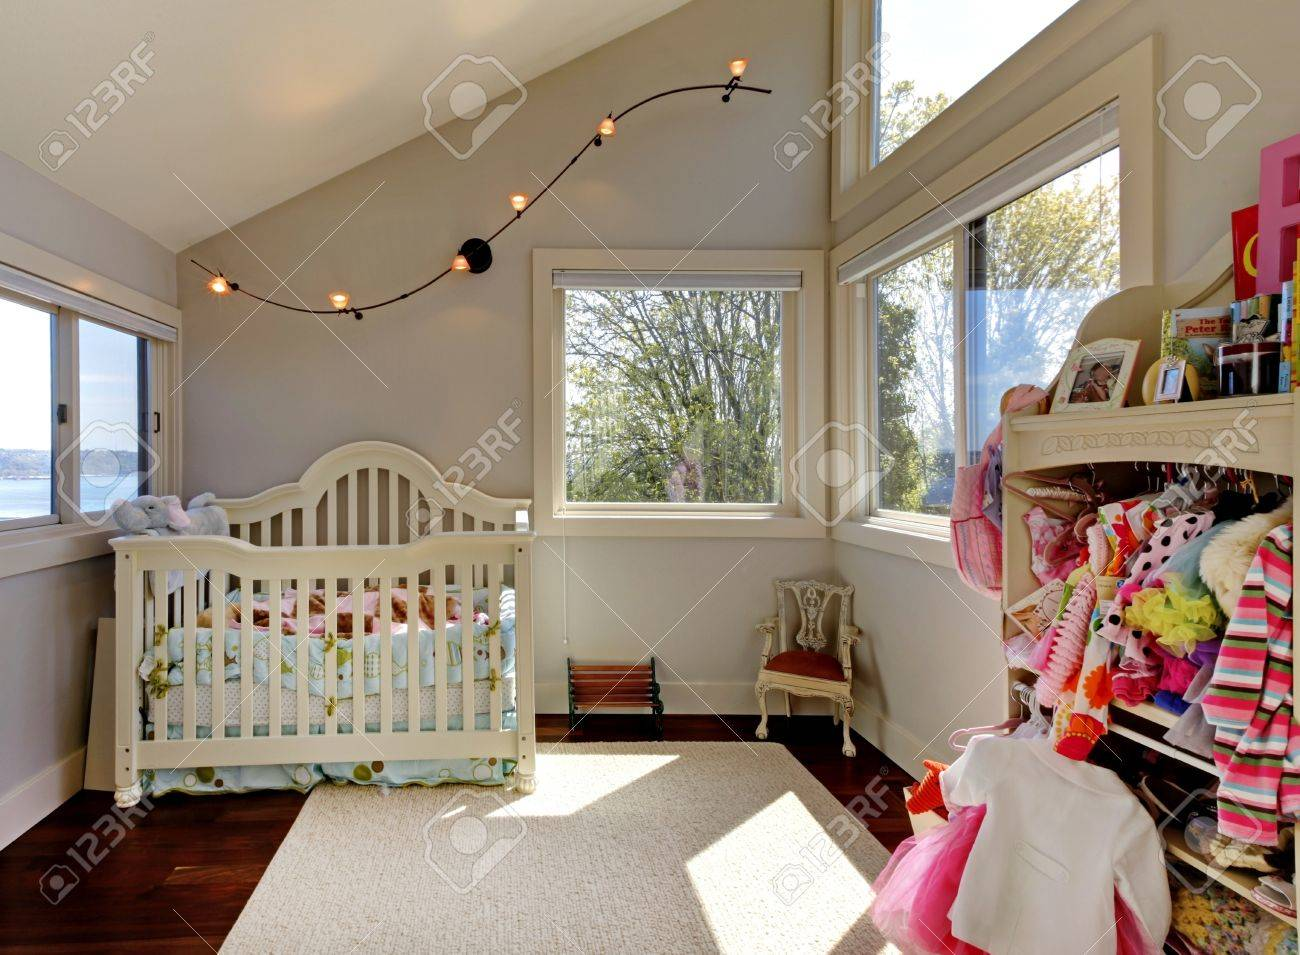 Baby girl room with white crib and clothes with many windows. Stock Photo - 16752360